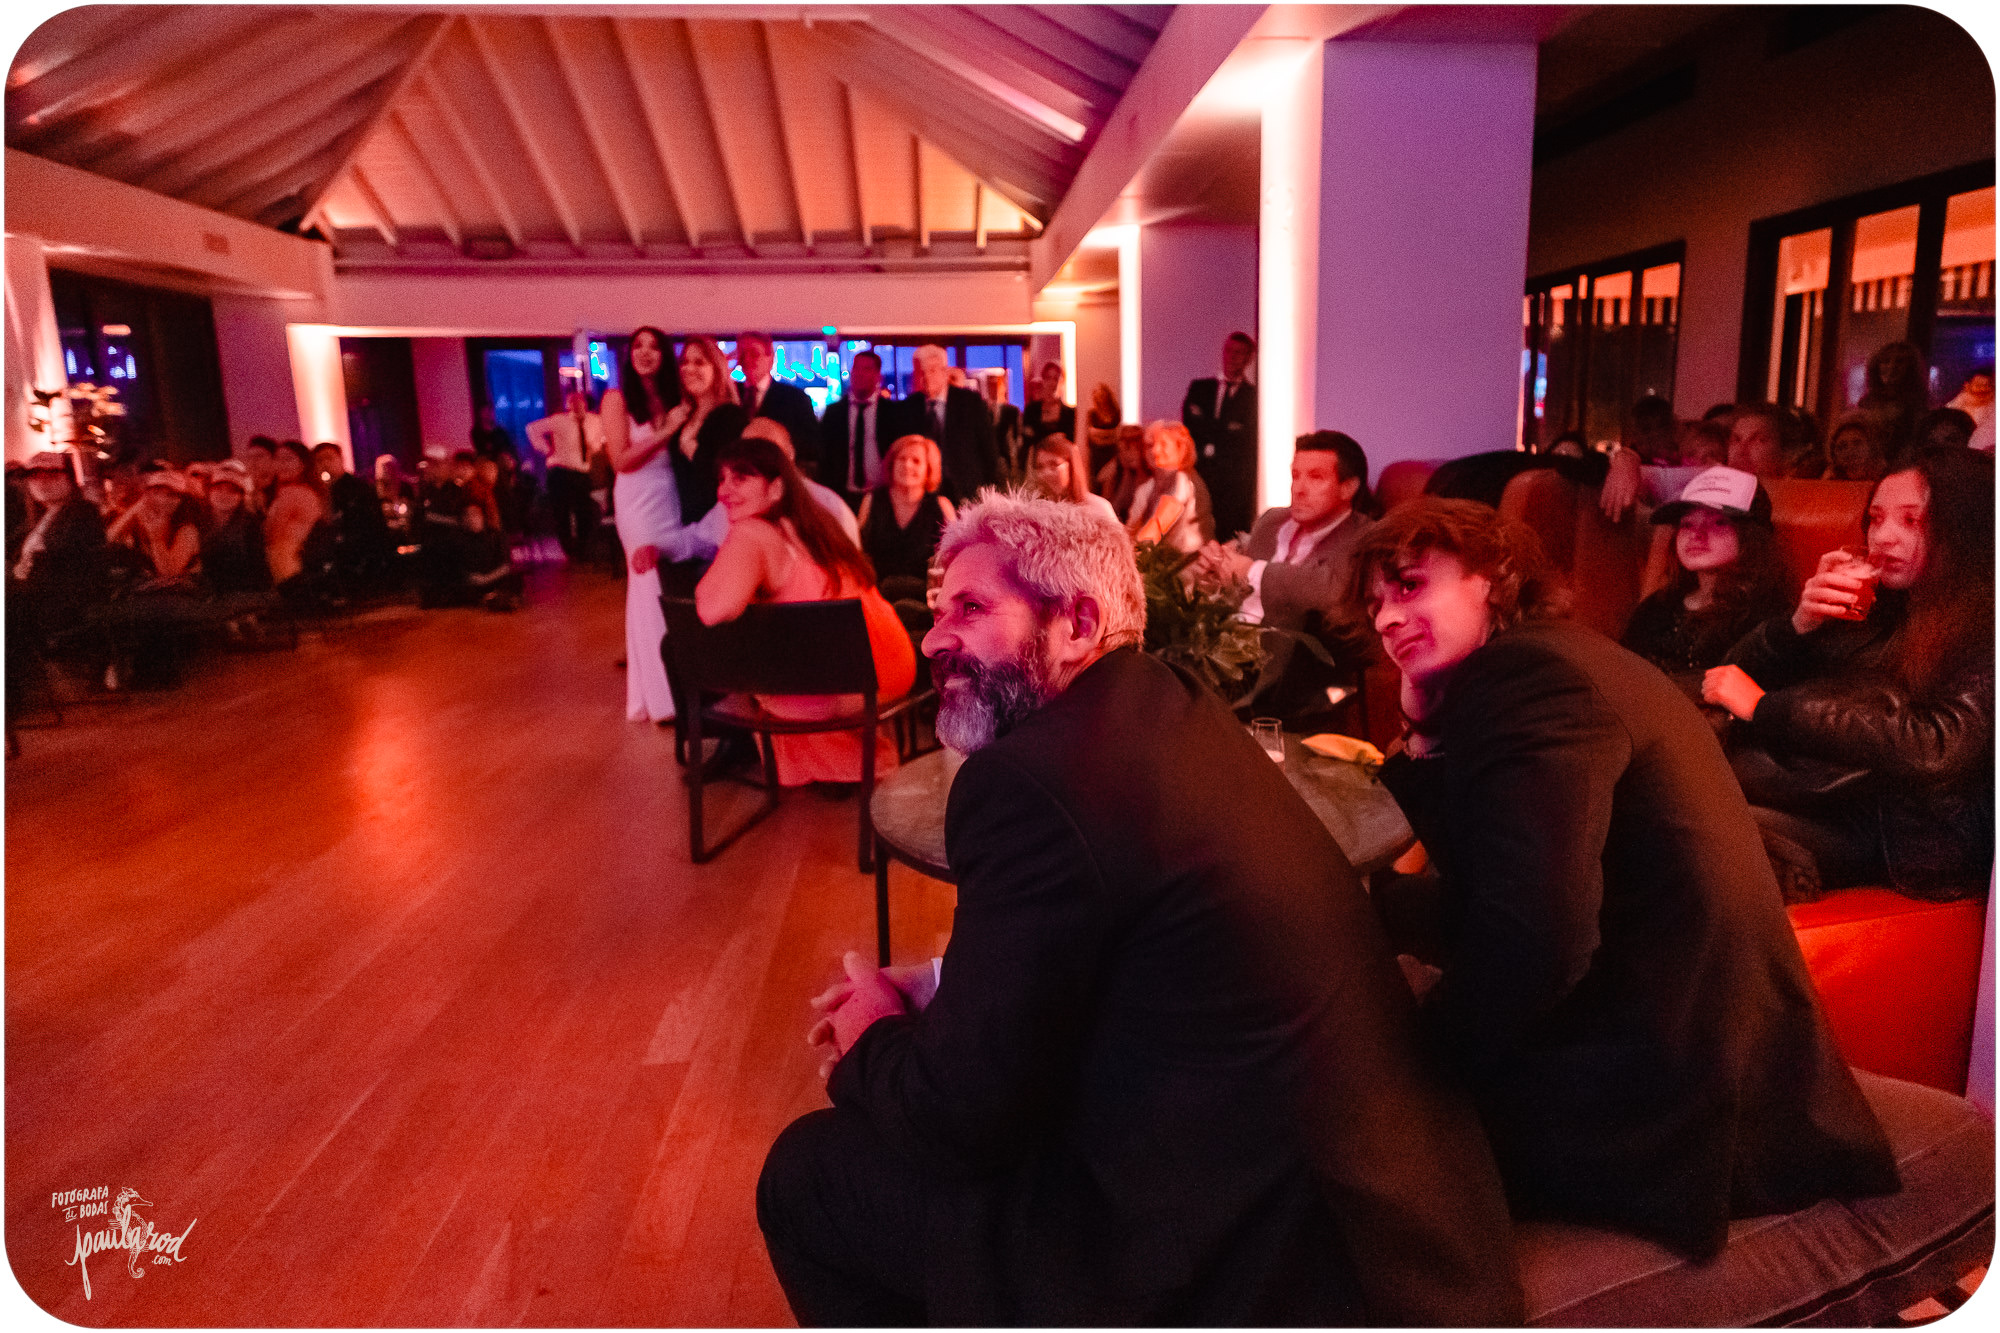 video_cronologico_para_eventos (5).jpg